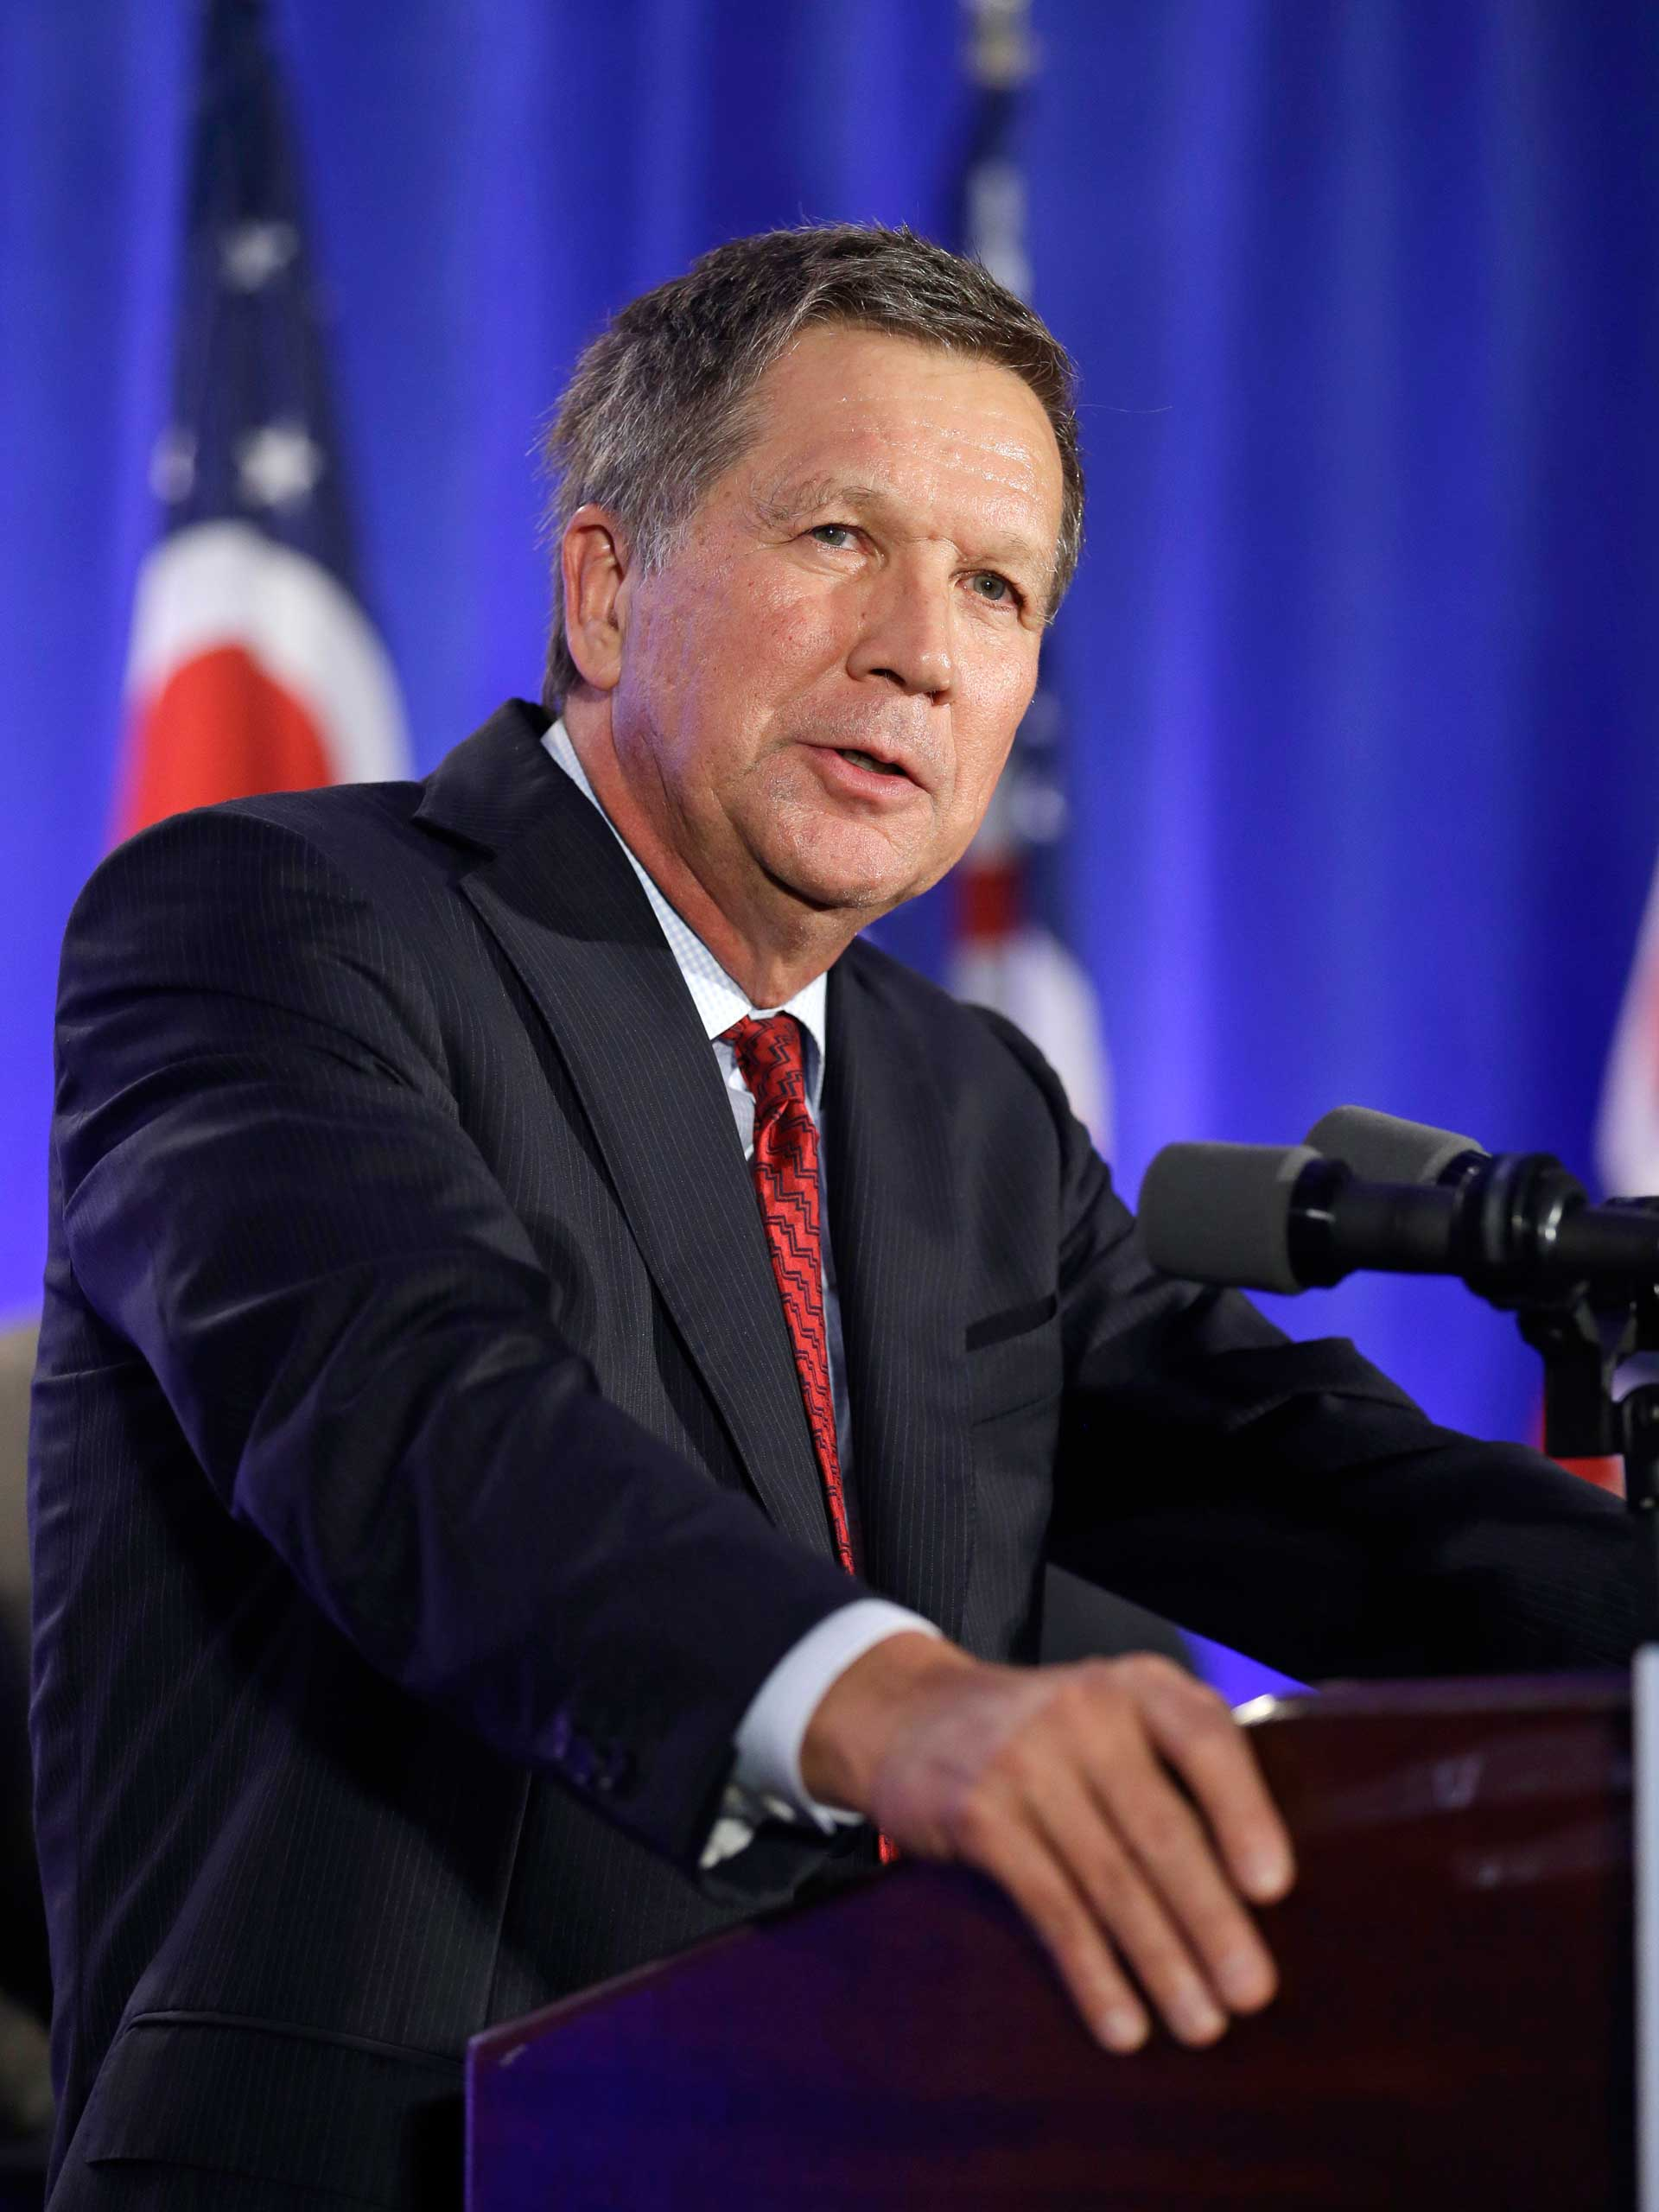 Ohio Governor John Kasich speaks to supporters at the Ohio Republican Party celebration in Columbus, Ohio on Nov. 4, 2014.